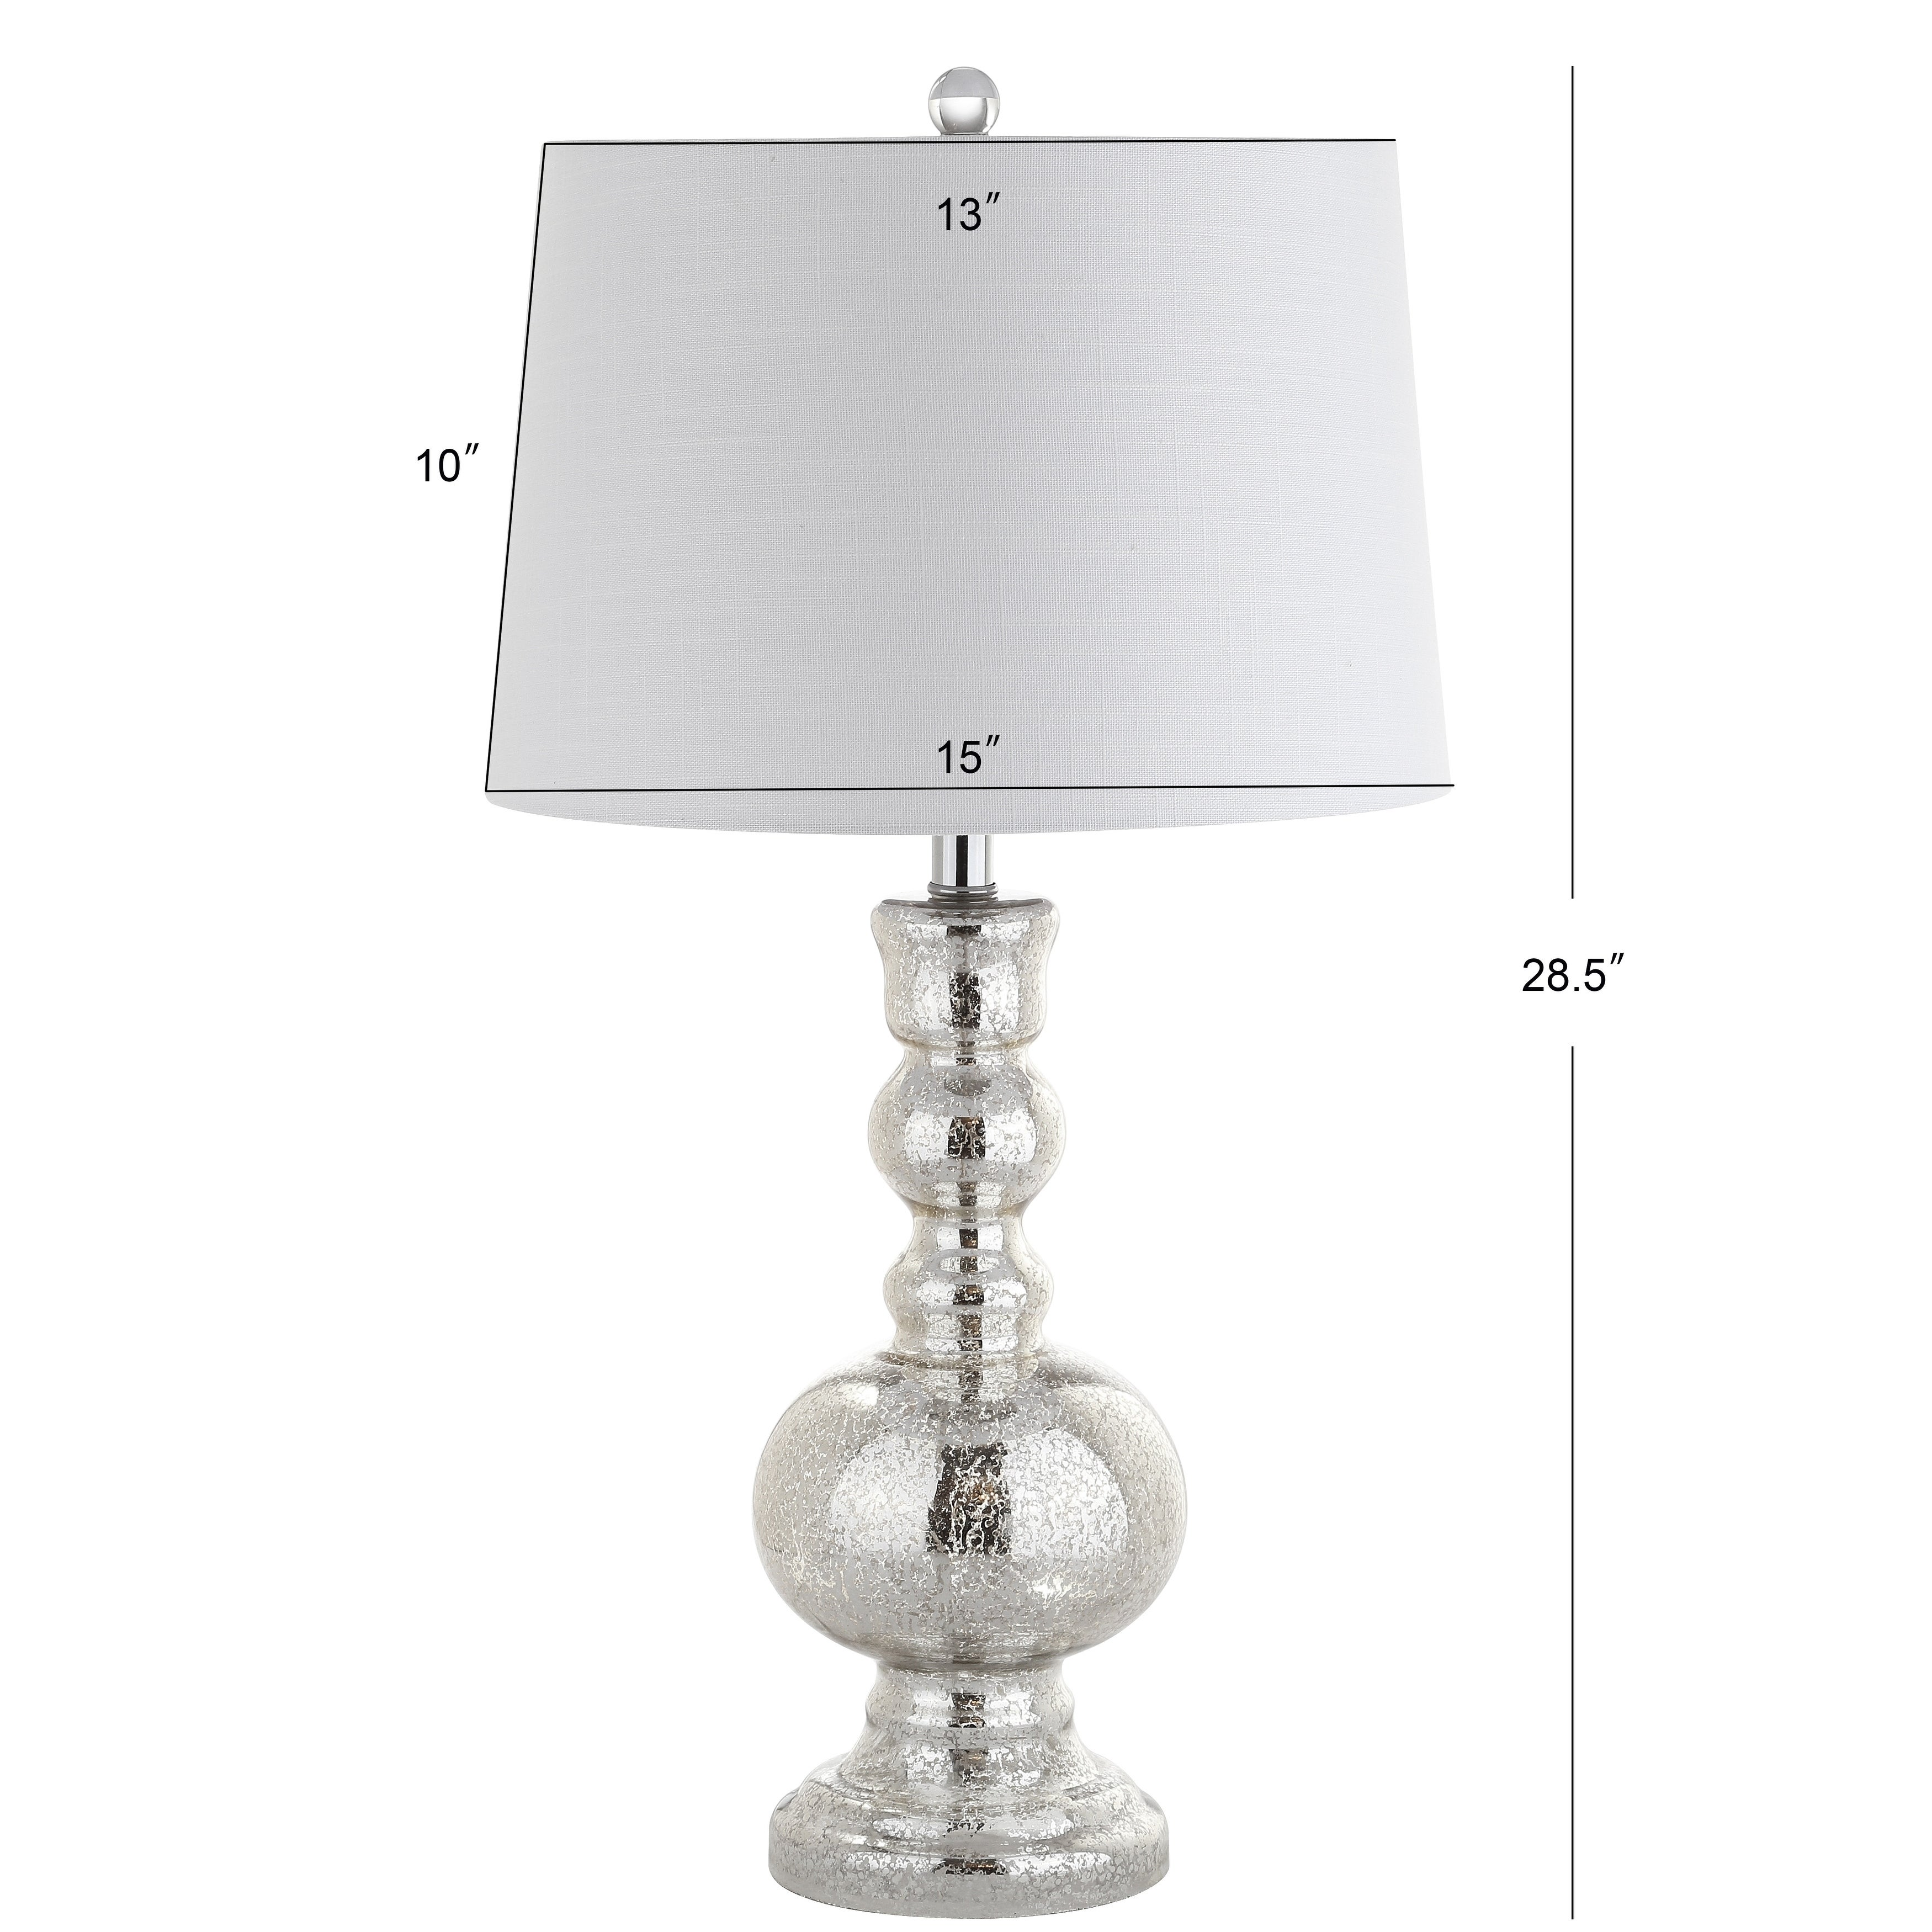 Genie 28 5 Glass Led Table Lamp Mercury Silver Set Of 2 By Jonathan Y Overstock 20750371